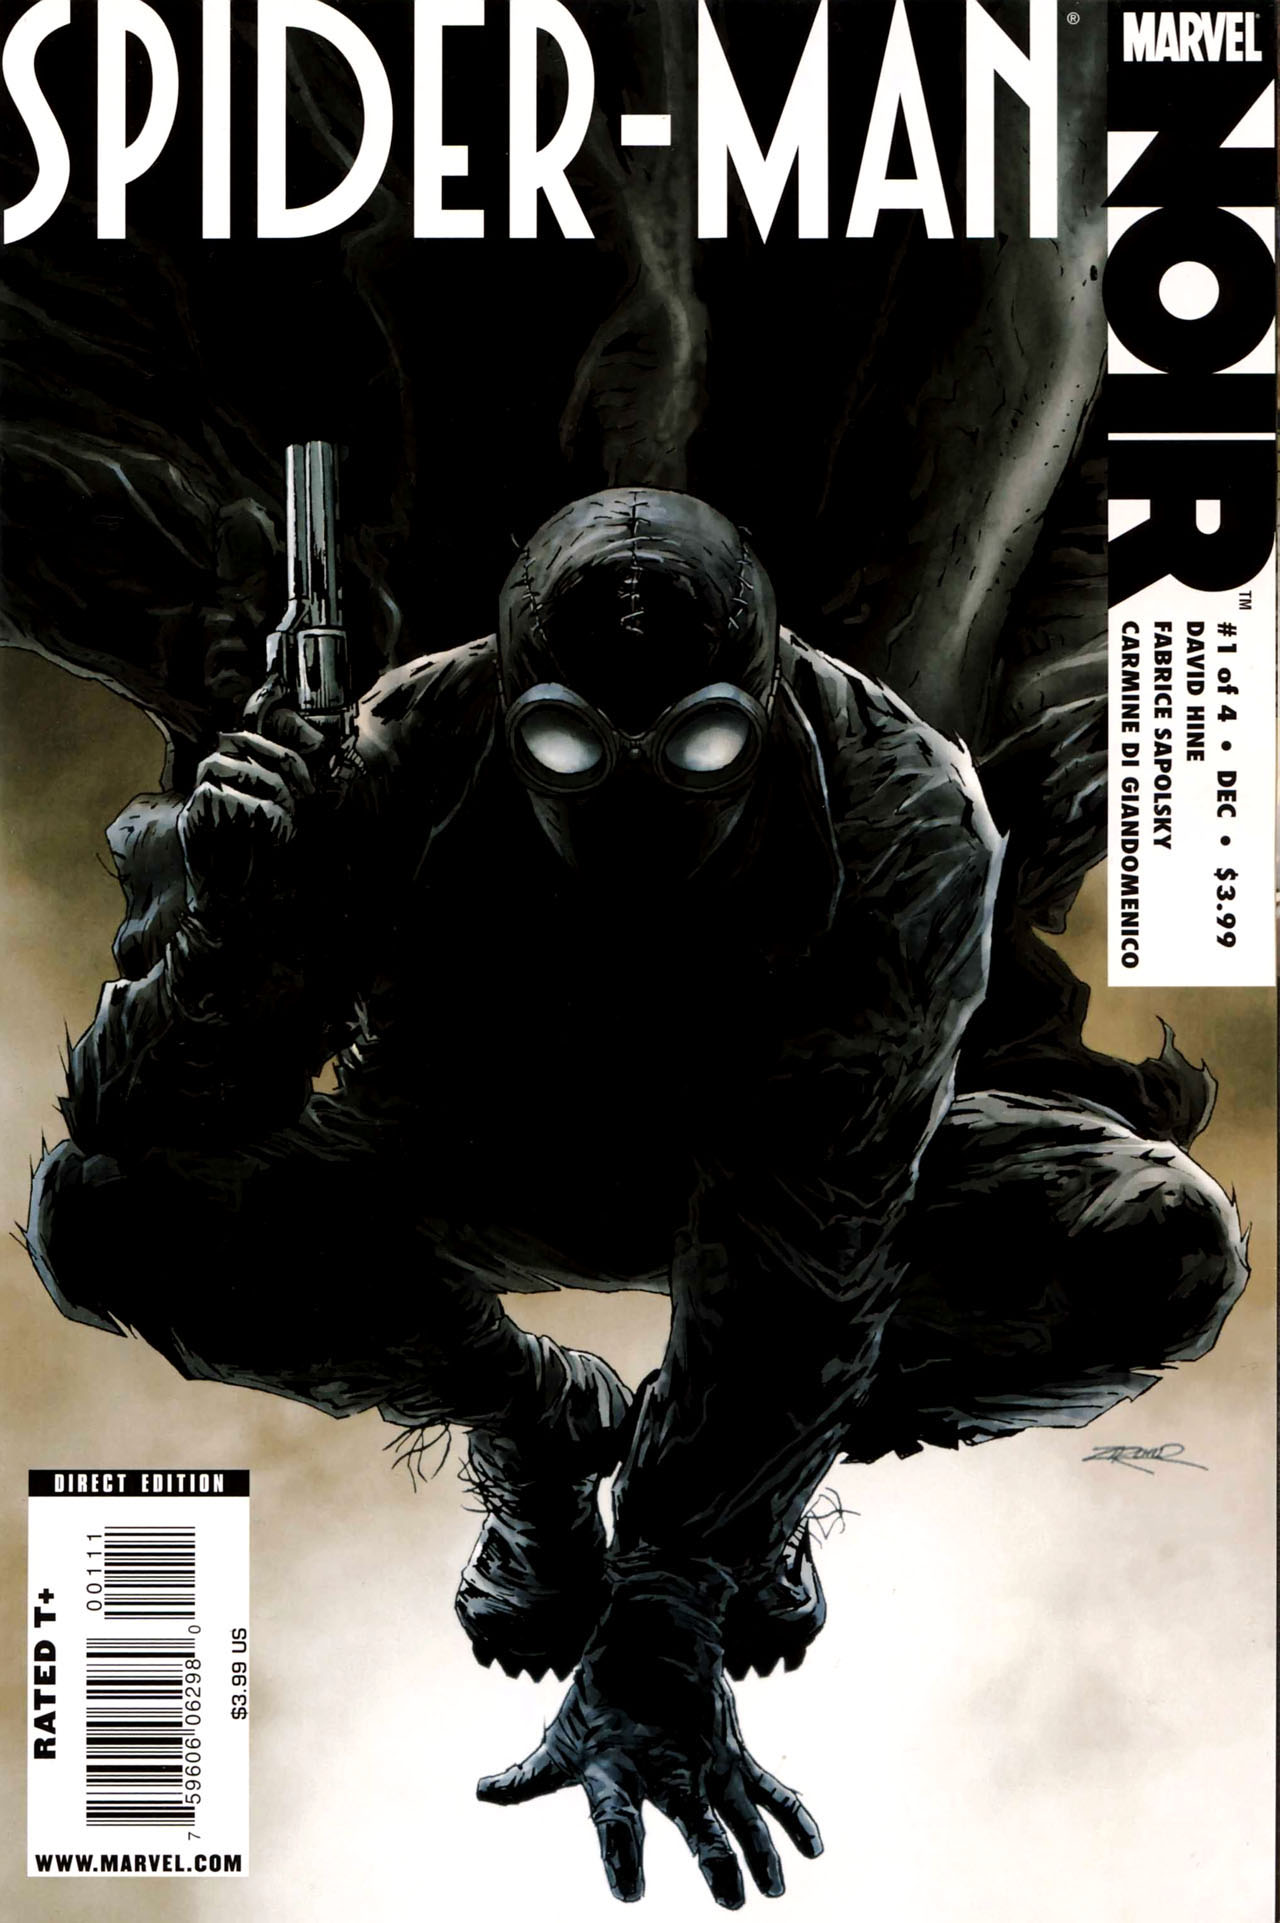 image - spider-man noir vol 1 1 | marvel database | fandom